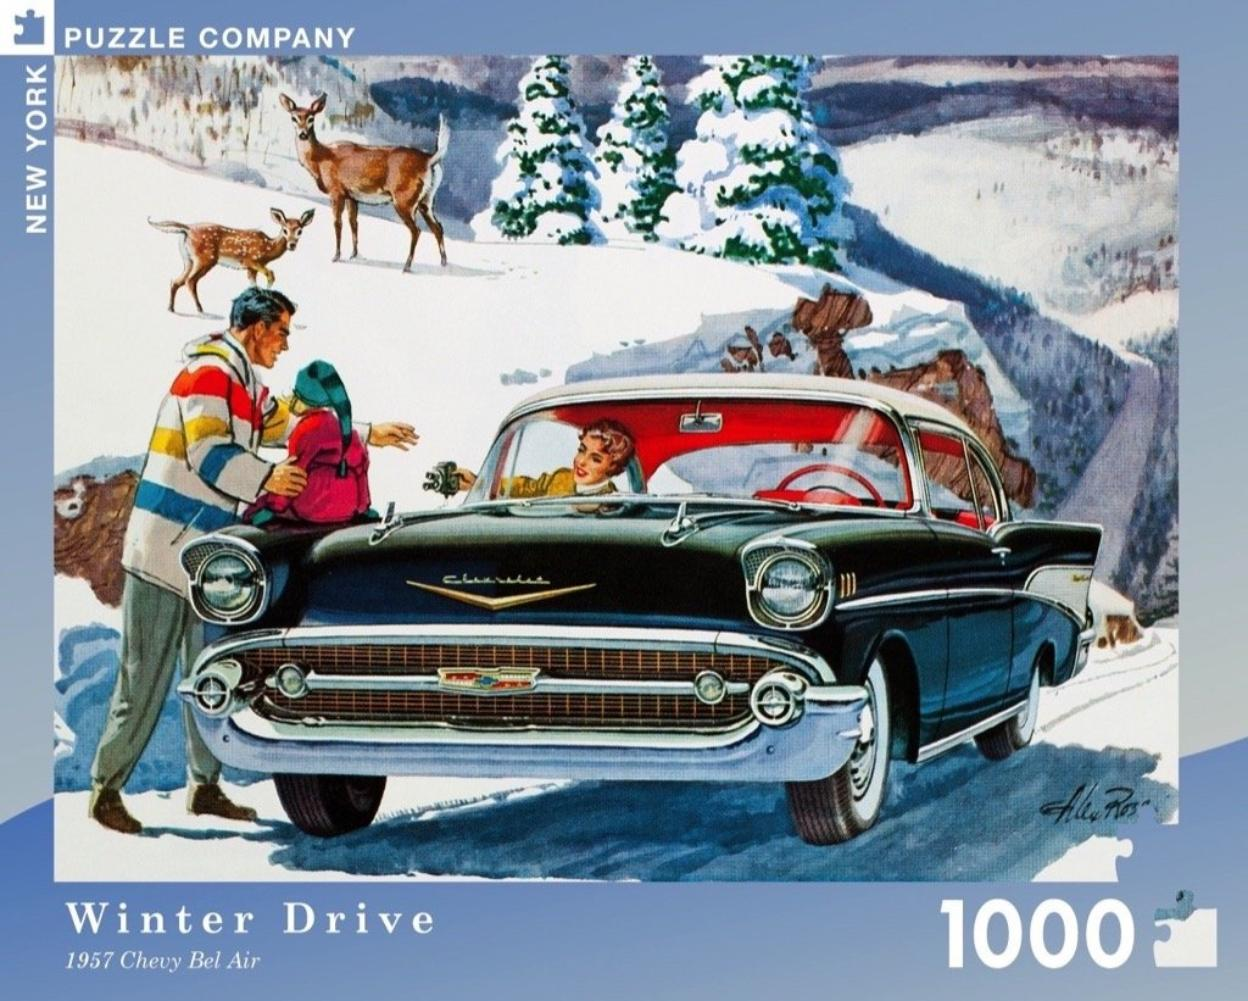 Winter Drive Jigsaw Puzzle 1000 pieces